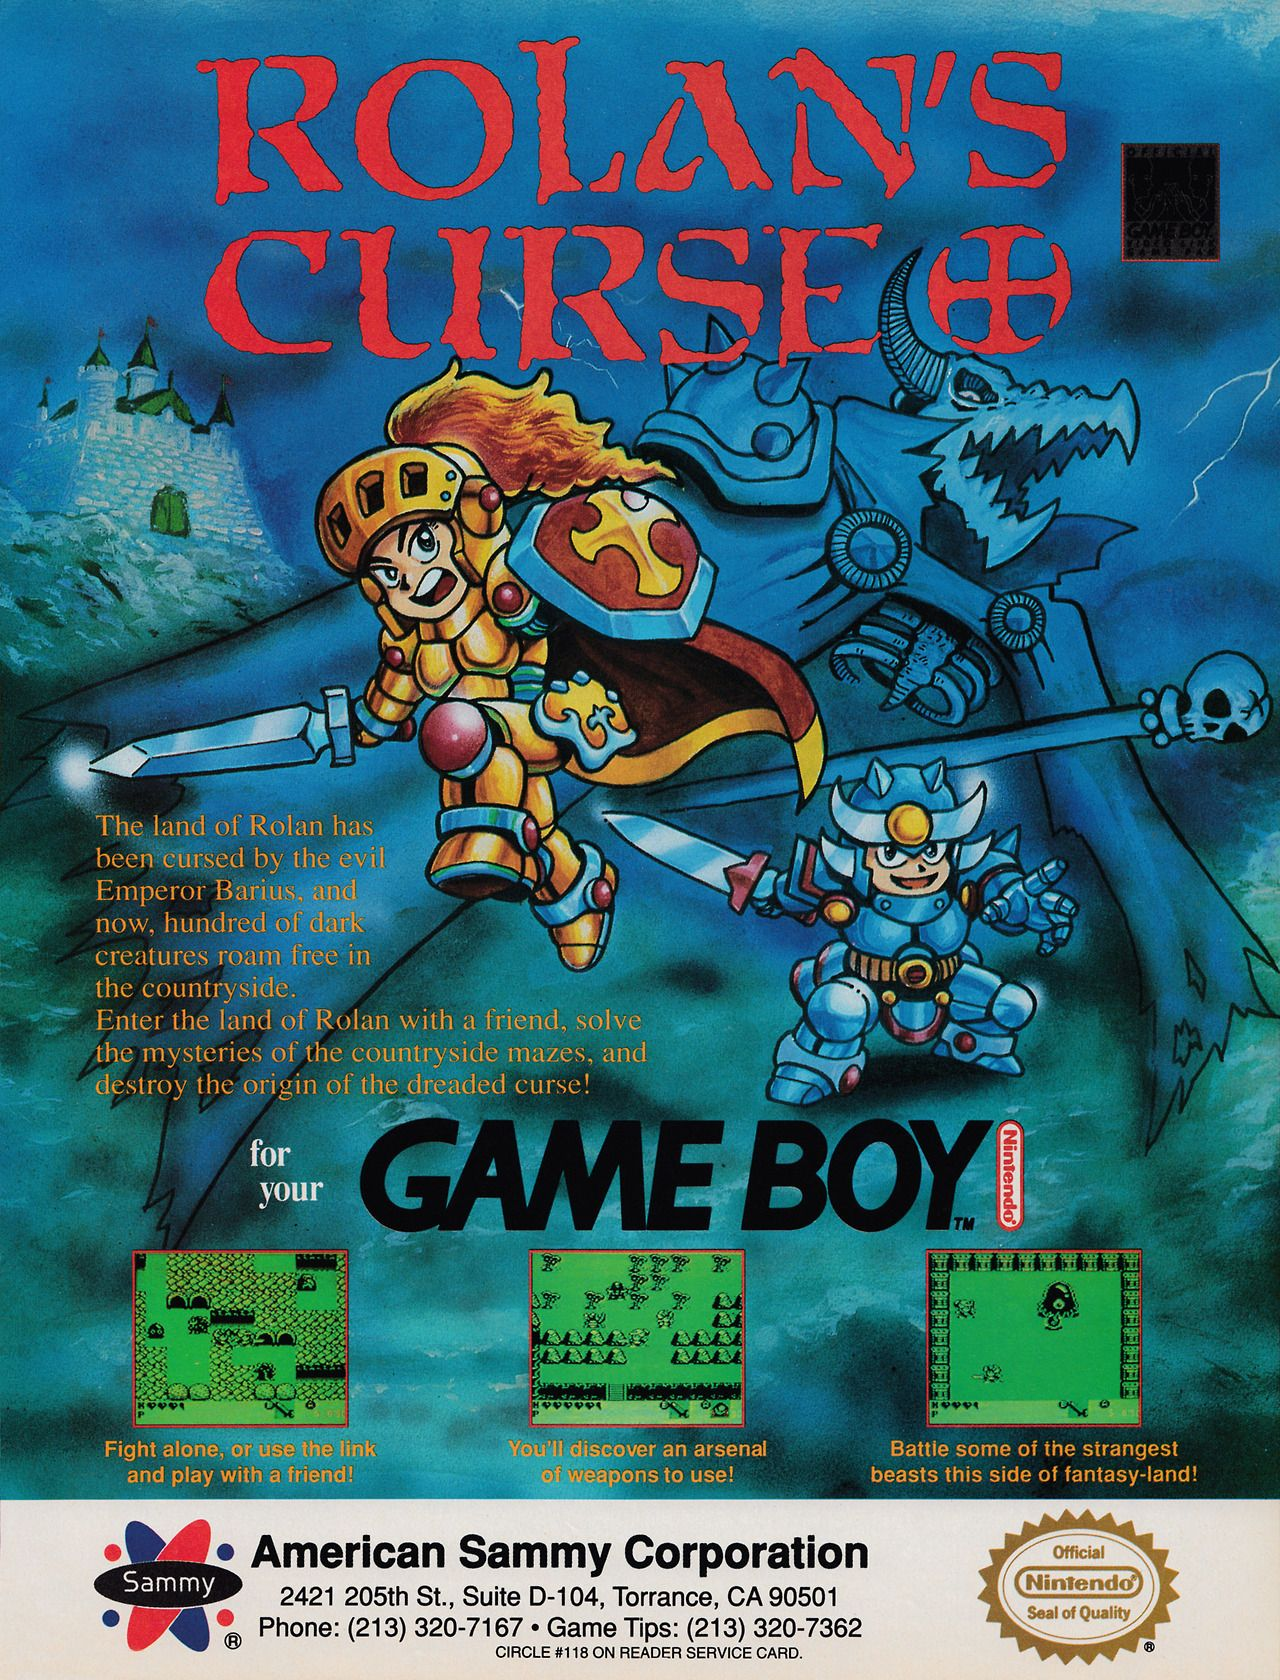 I wonder who owns the rights to games like Roland's Curse now? Sega